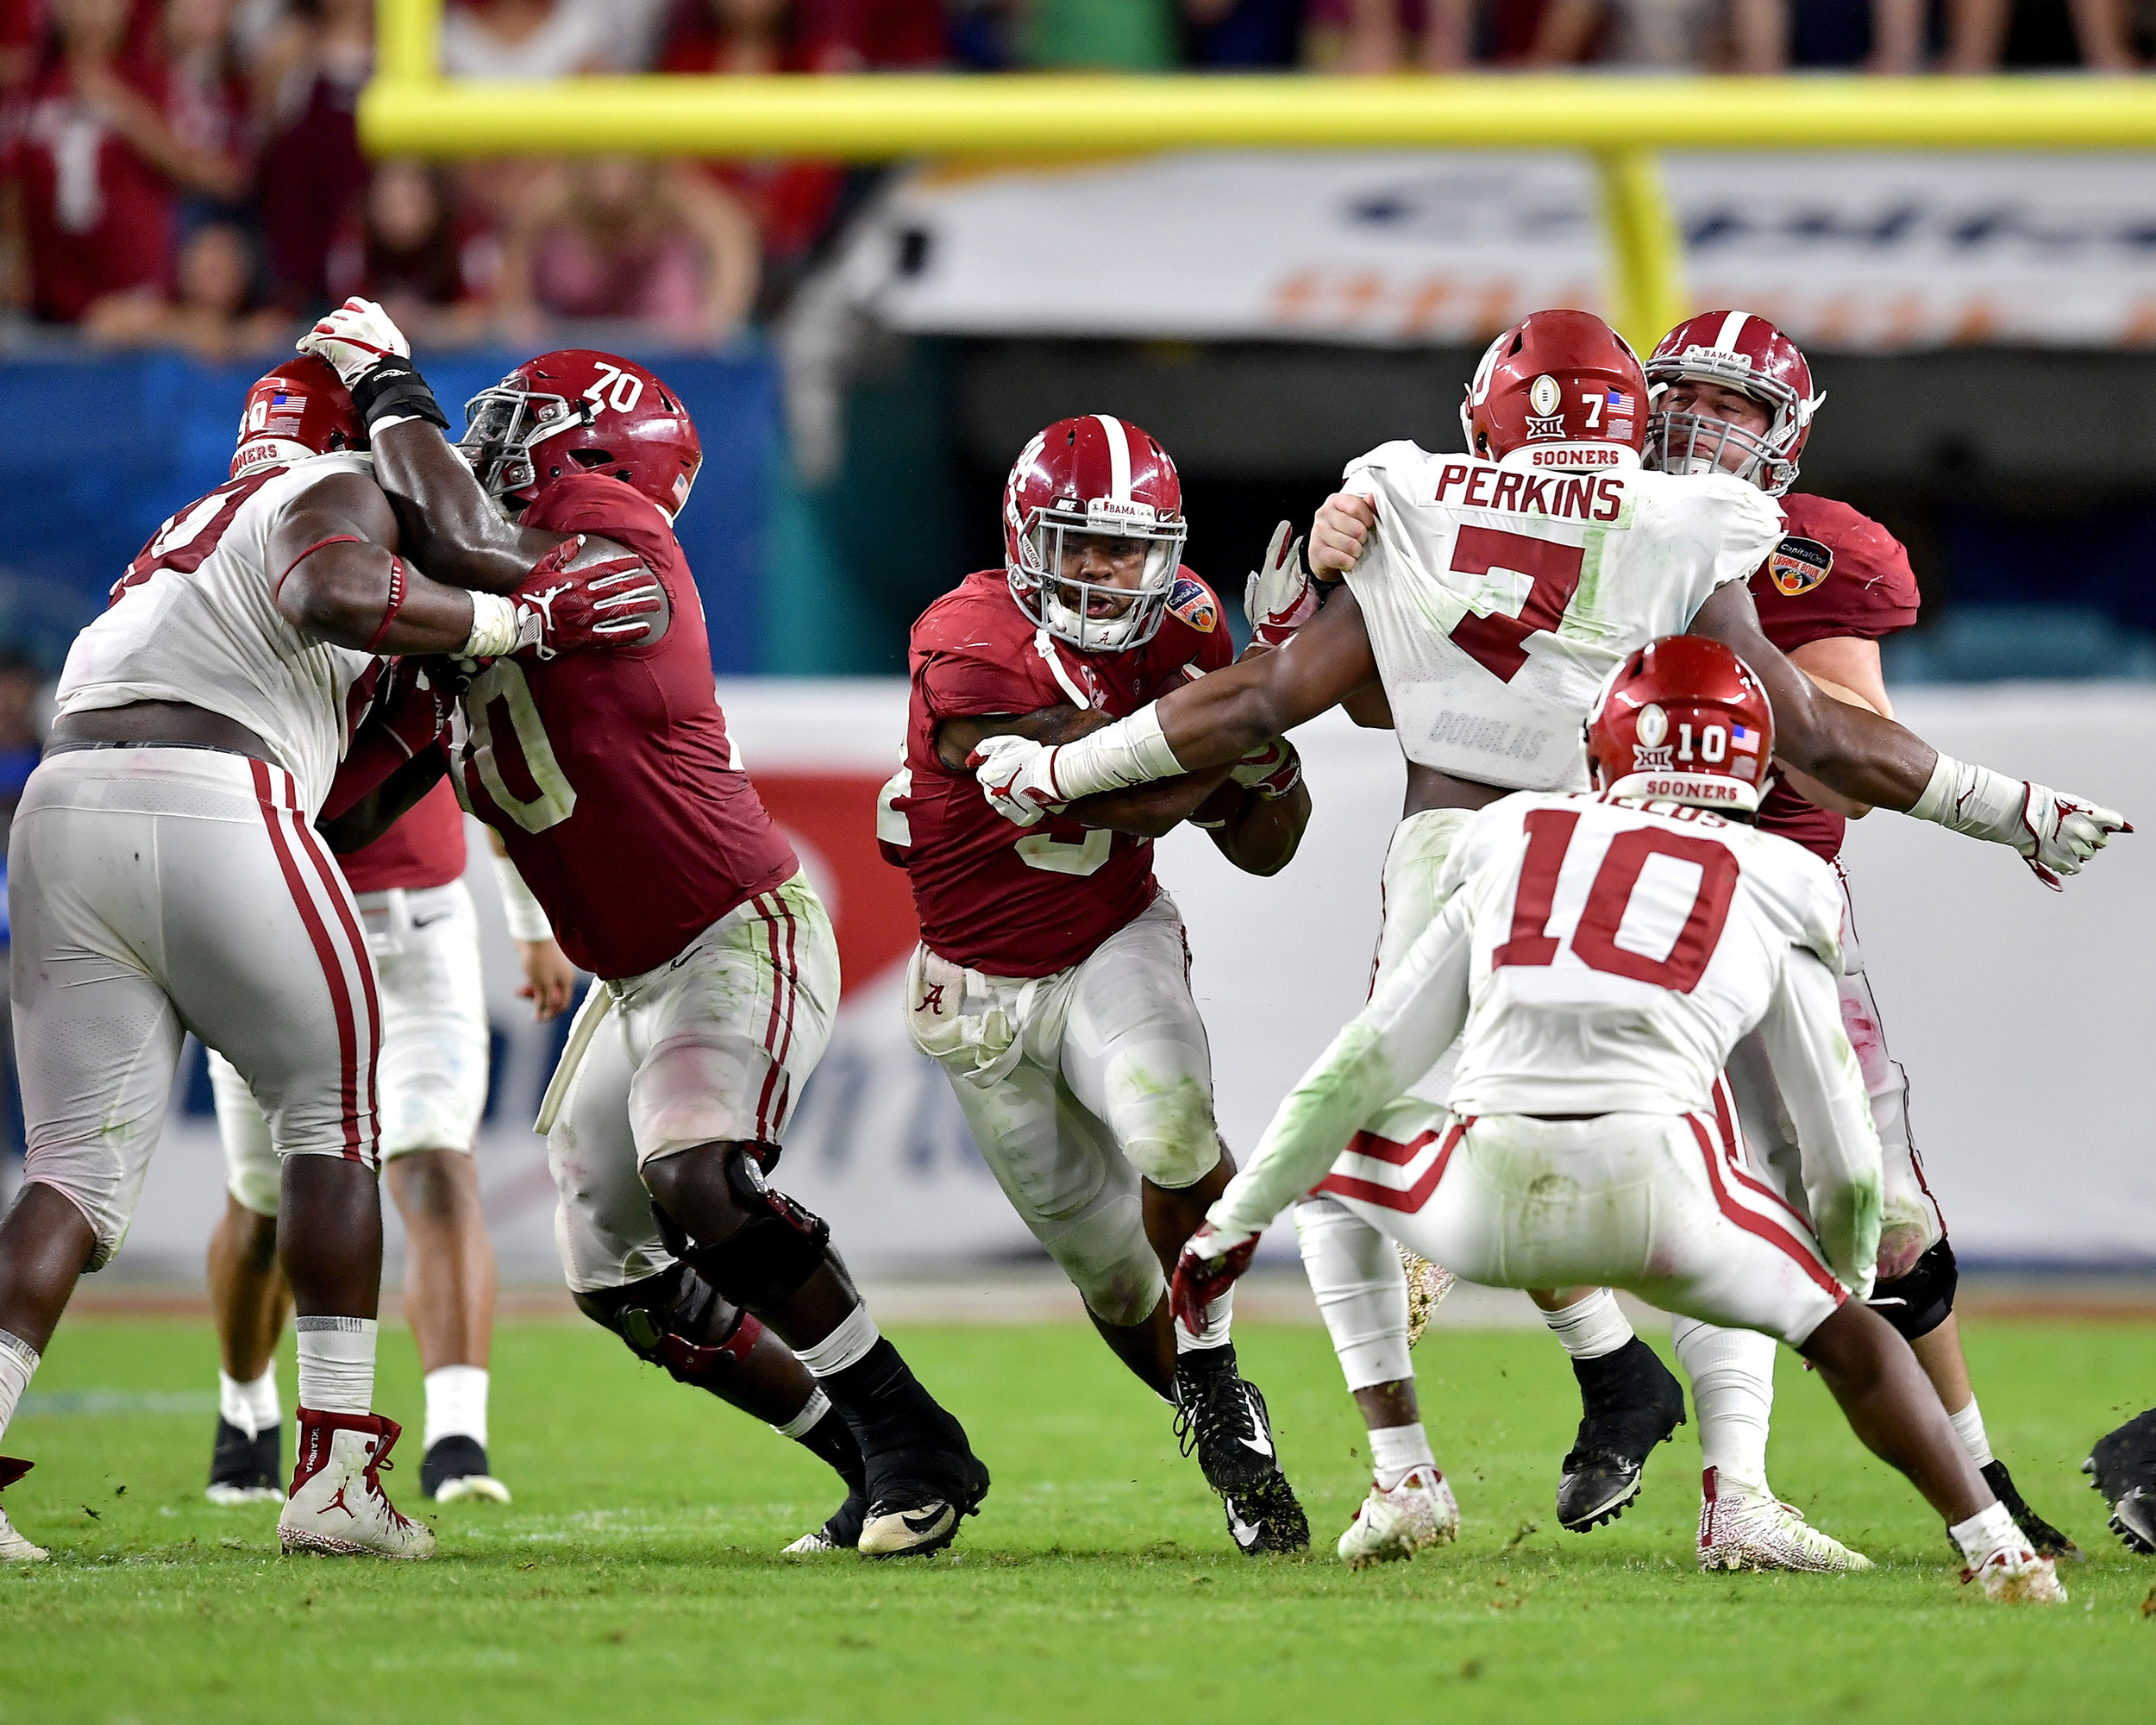 Alabama Crimson Tide running back Damien Harris (34) with a carry up the middle in the second half of the Capital One Orange Bowl, featuring Alabama Crimson Tide and the Oklahoma Sooners, at Hard Rock Stadium in Miami Gardens, Fla., Saturday, Dec. 29, 2018. Alabama wins 45-34. (Photo by Lee Walls)